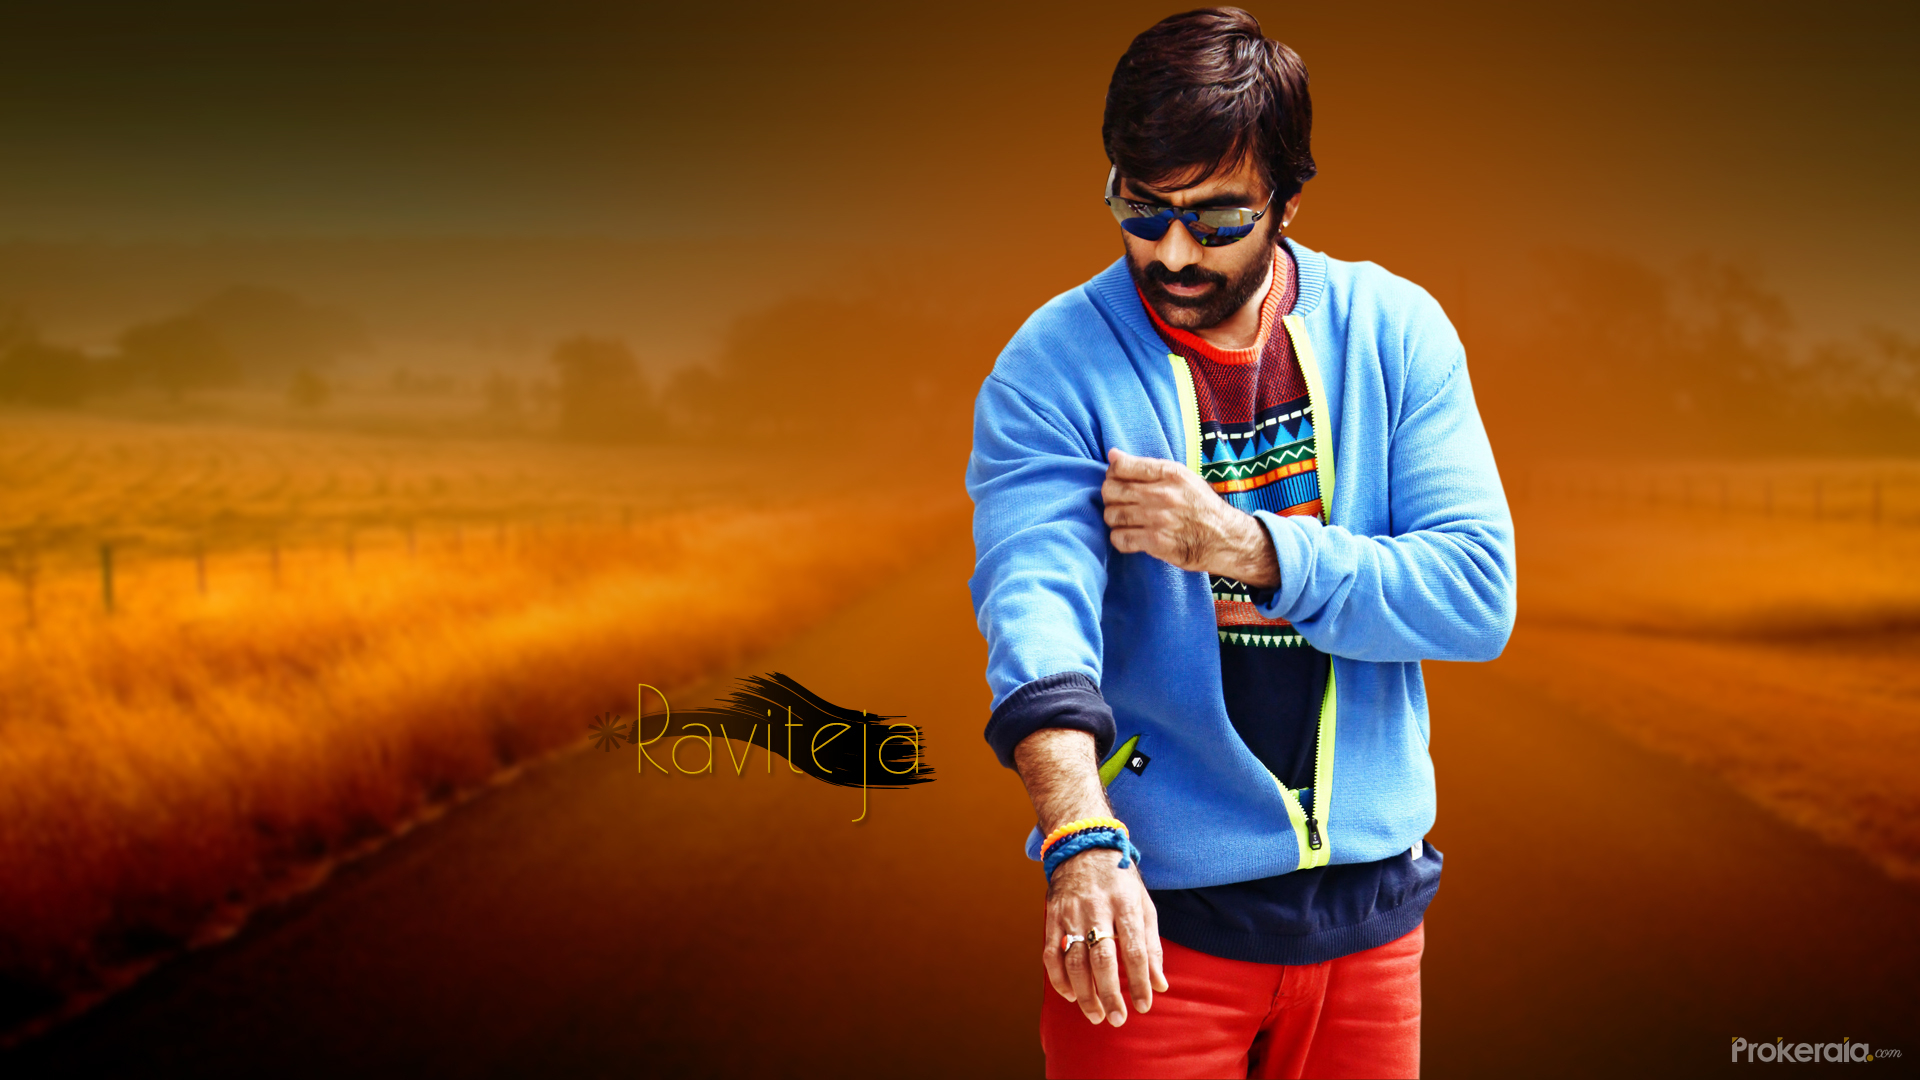 Horoscope Hd Wallpapers Ravi Teja Wallpaper